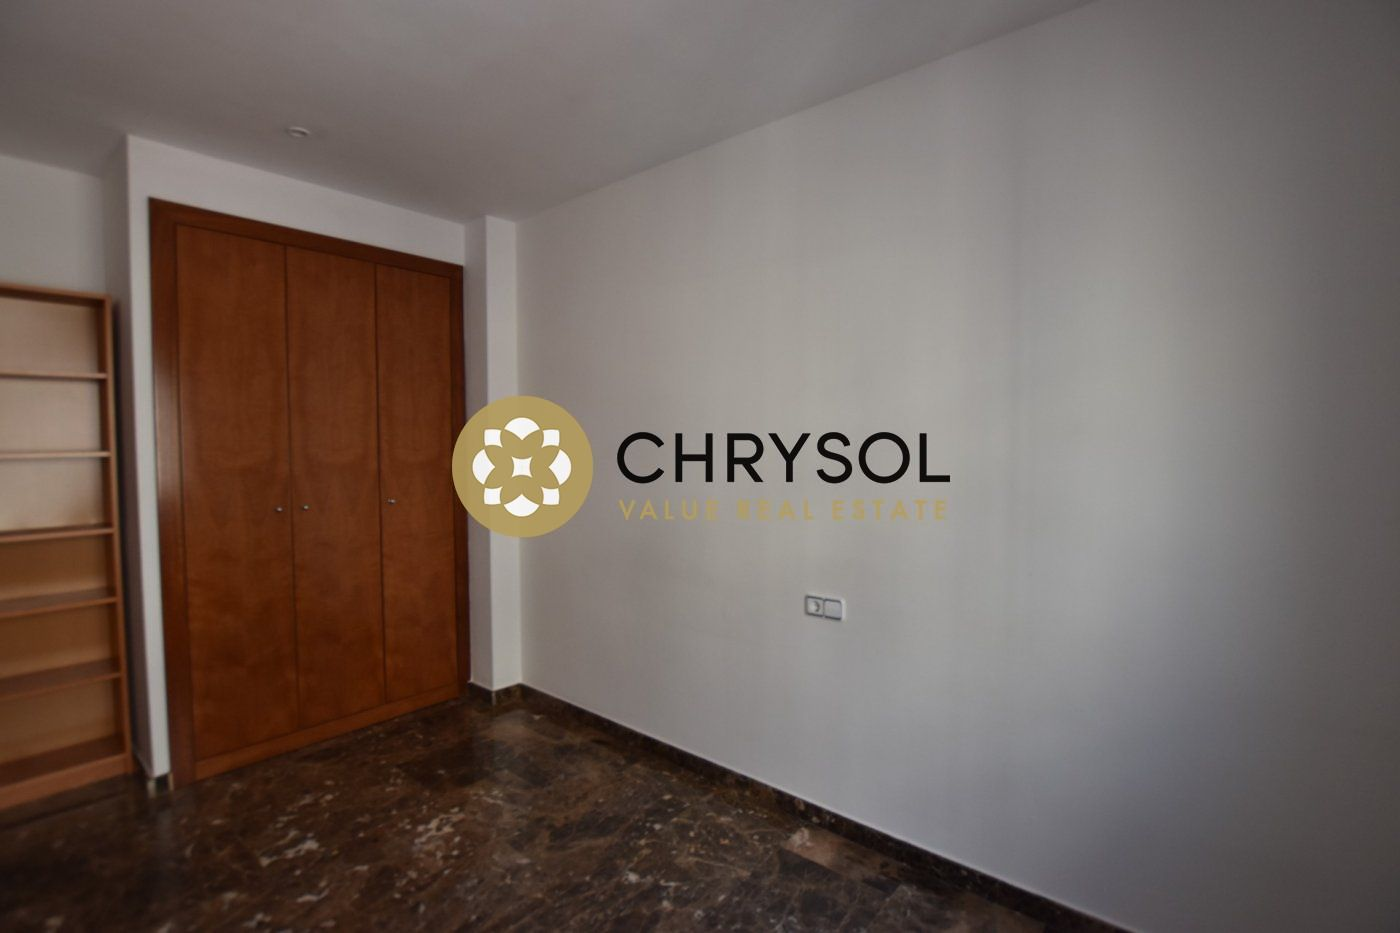 Photogallery - 34 - Chrysol Value